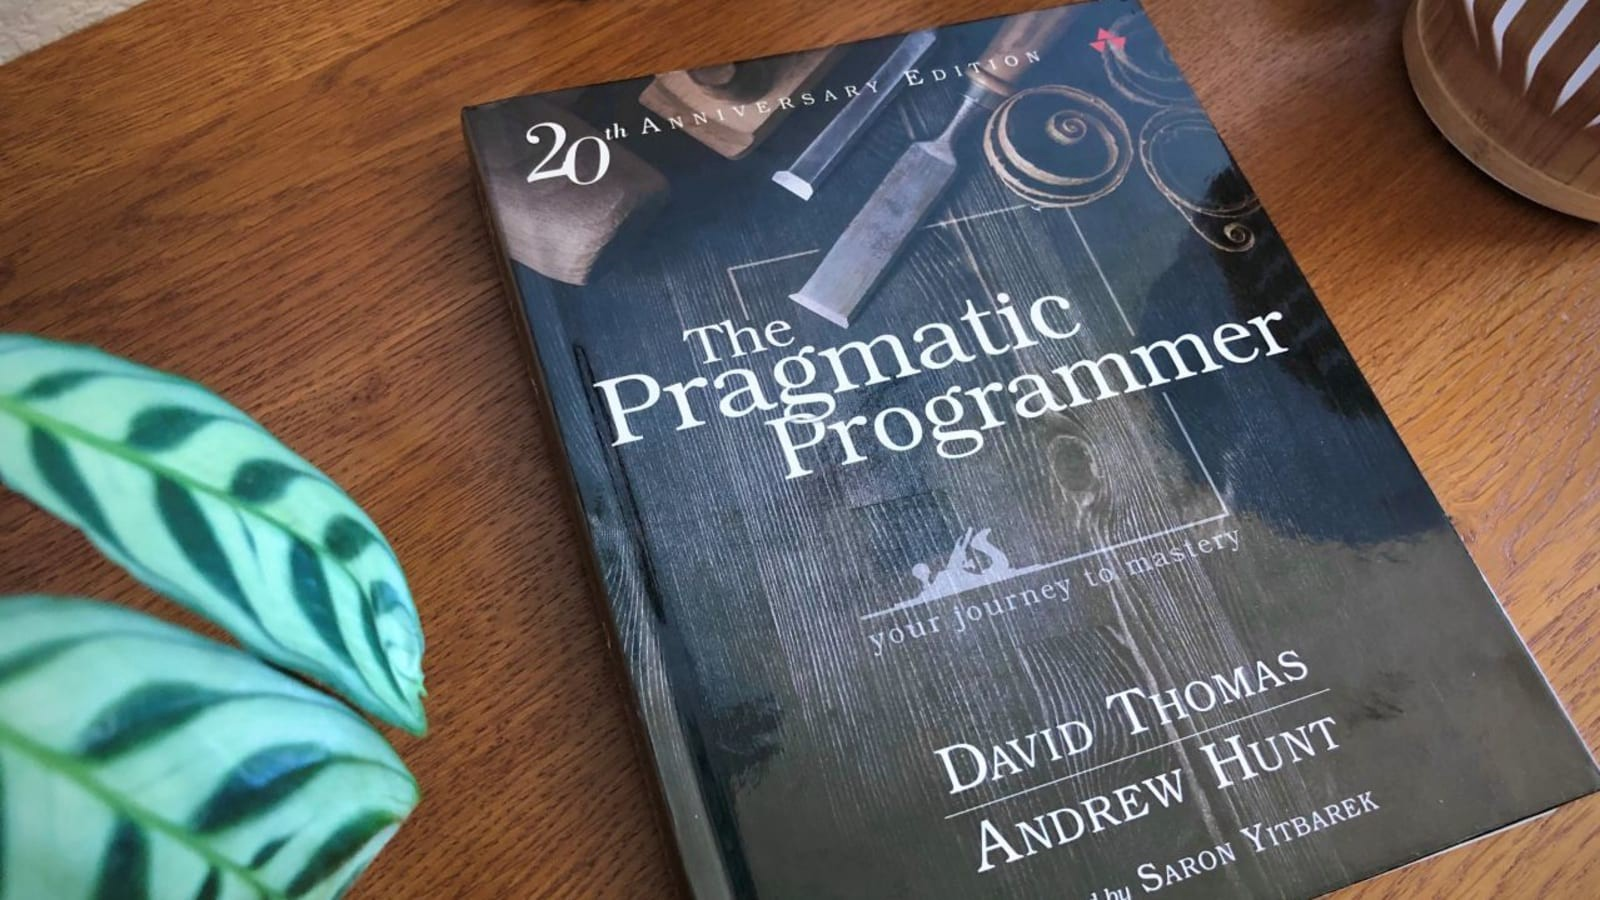 The Pragmatic Programmer — book for programmers who want to be professional